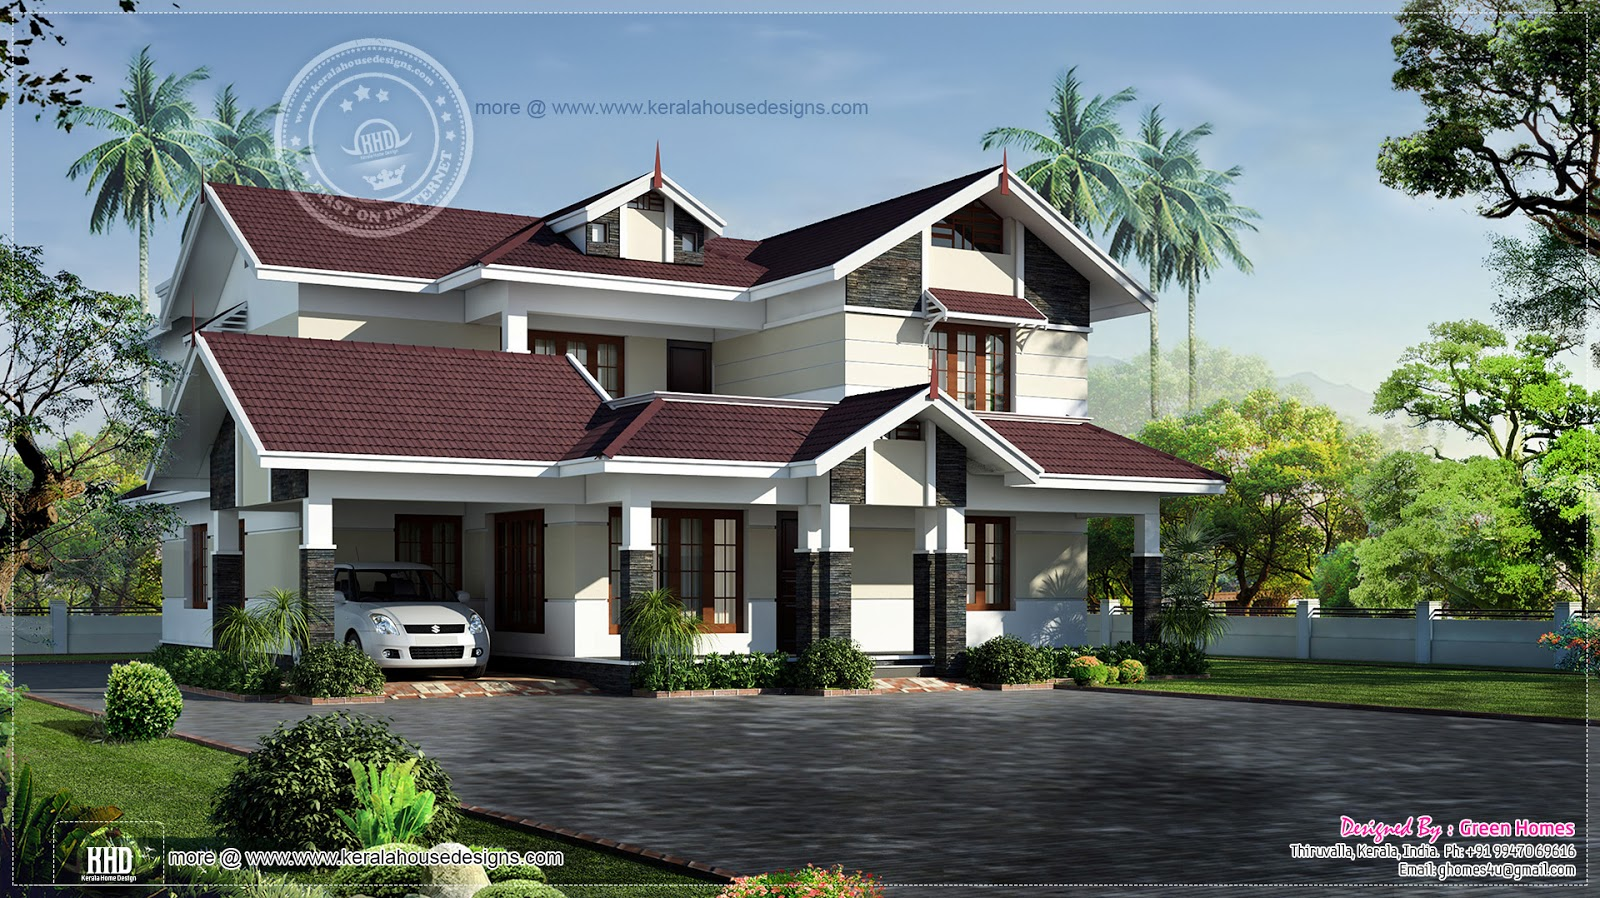 Most Beautiful Houses in Kerala Most Beautiful House in Sweden